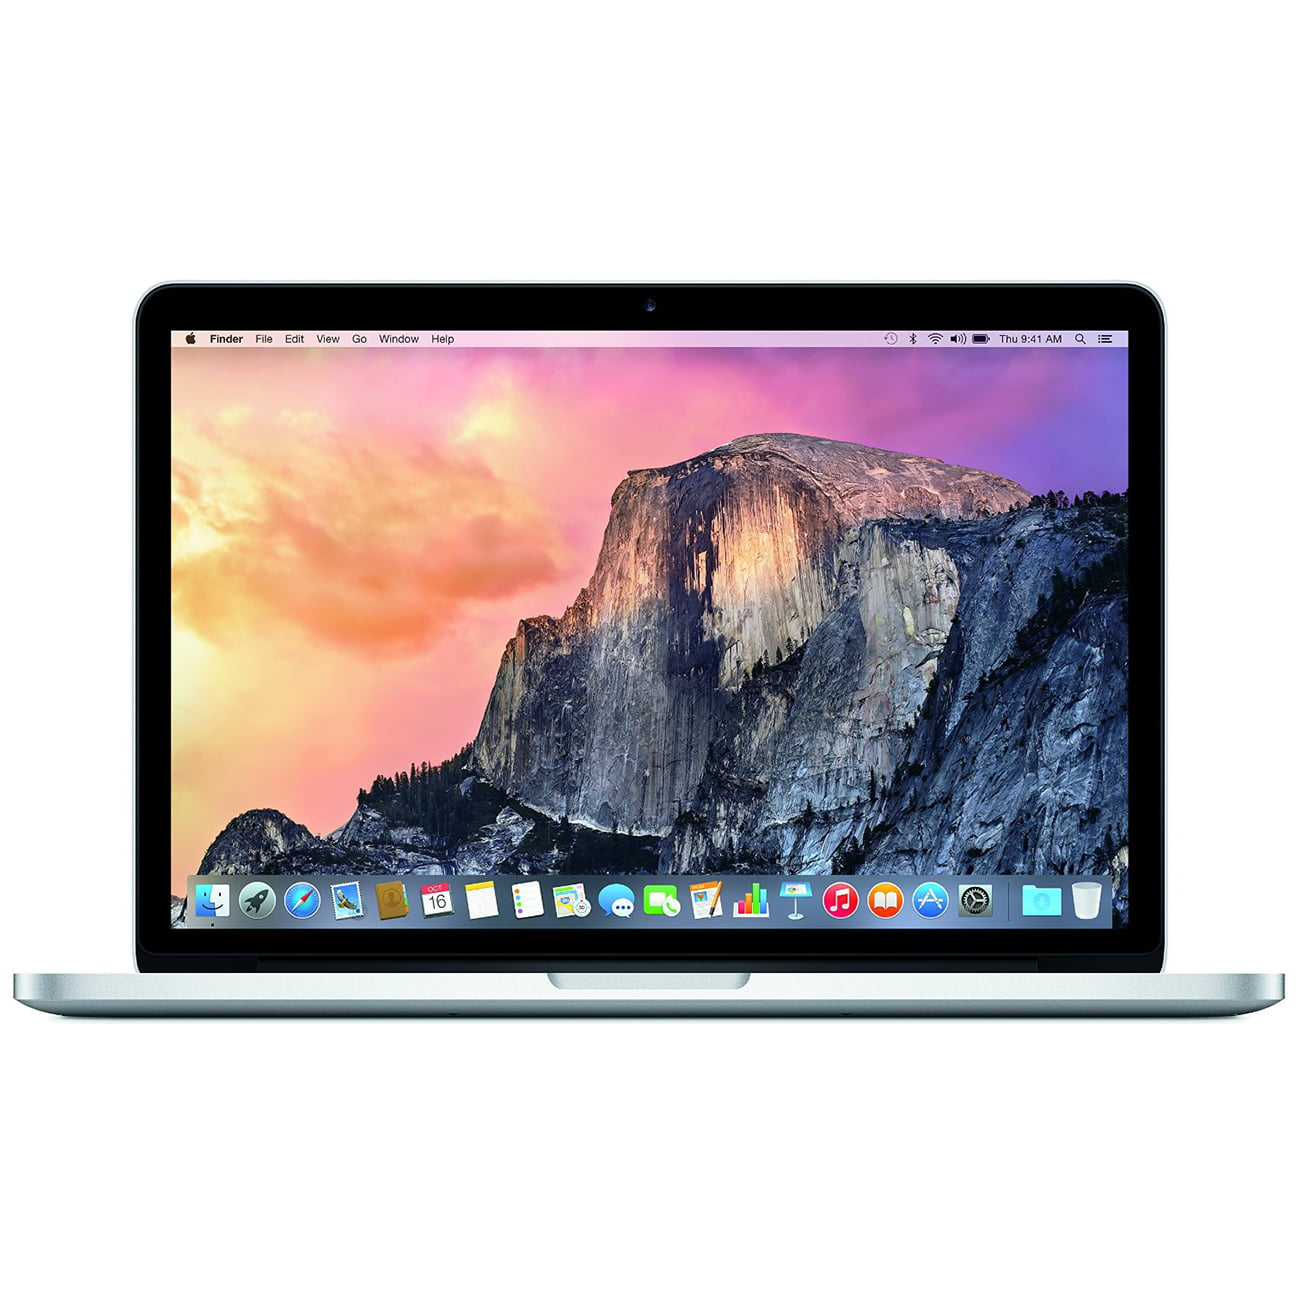 "Refurbished Apple MacBook Pro 13.3"" LED Intel i5-3210M Core 2.5GHz 4GB 500GB Laptop MD101LLA by Apple"